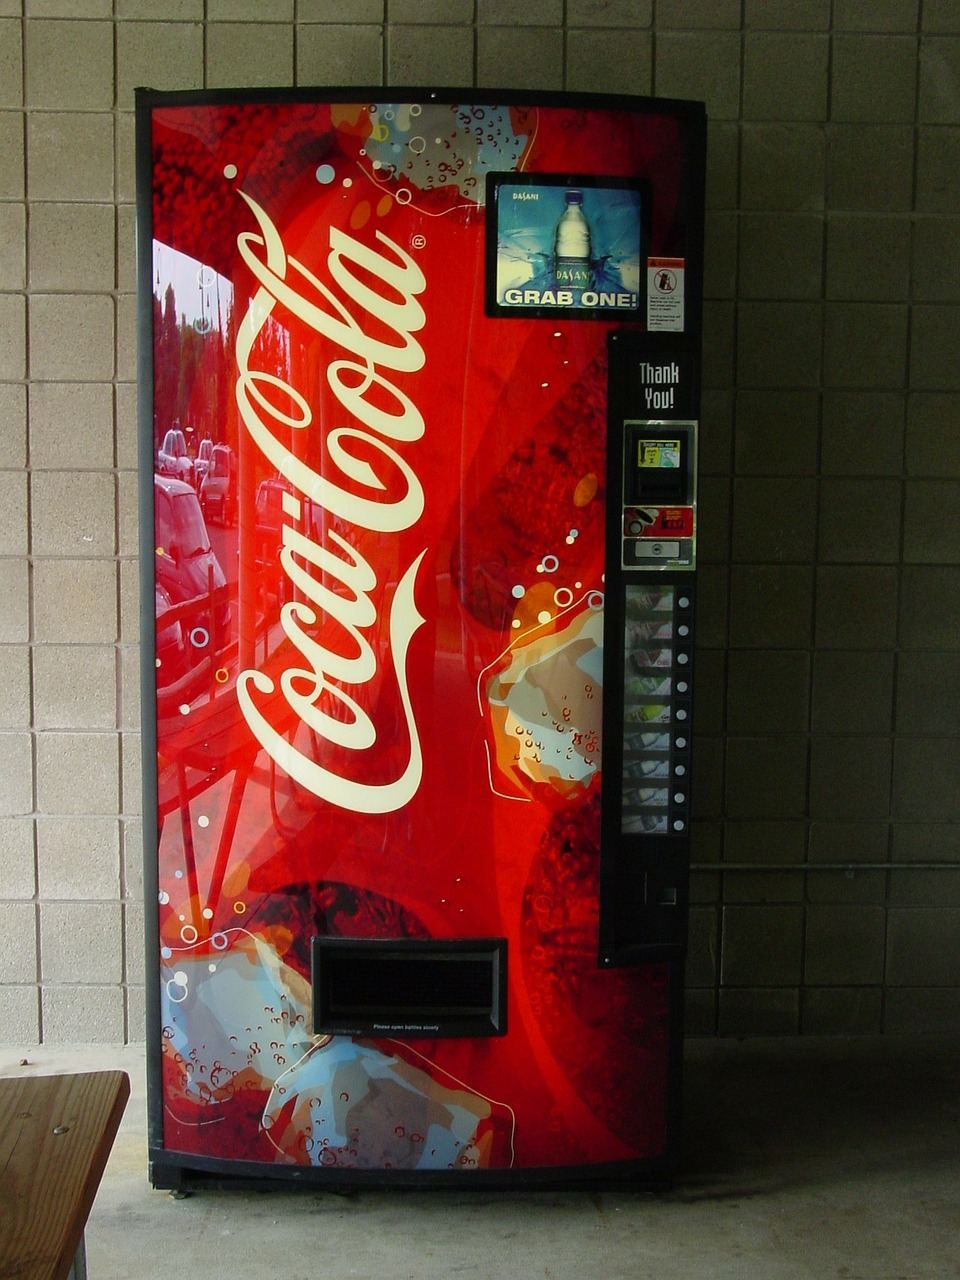 vending-machines-276171_1280.jpg